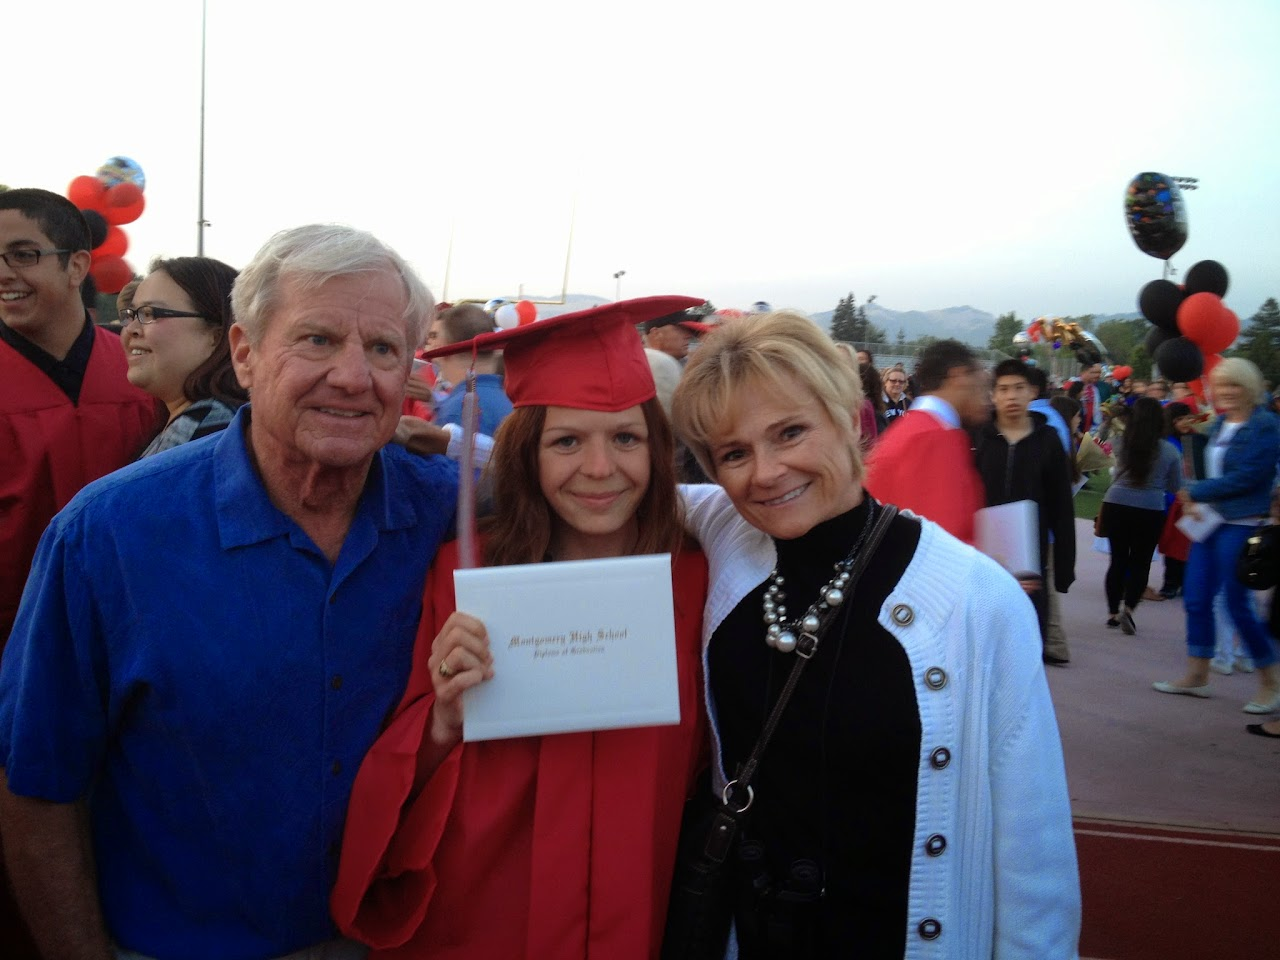 Courtneys Graduation Montgomery High May 2014 - Courtney_graduation_MHS_20140530_43.JPG